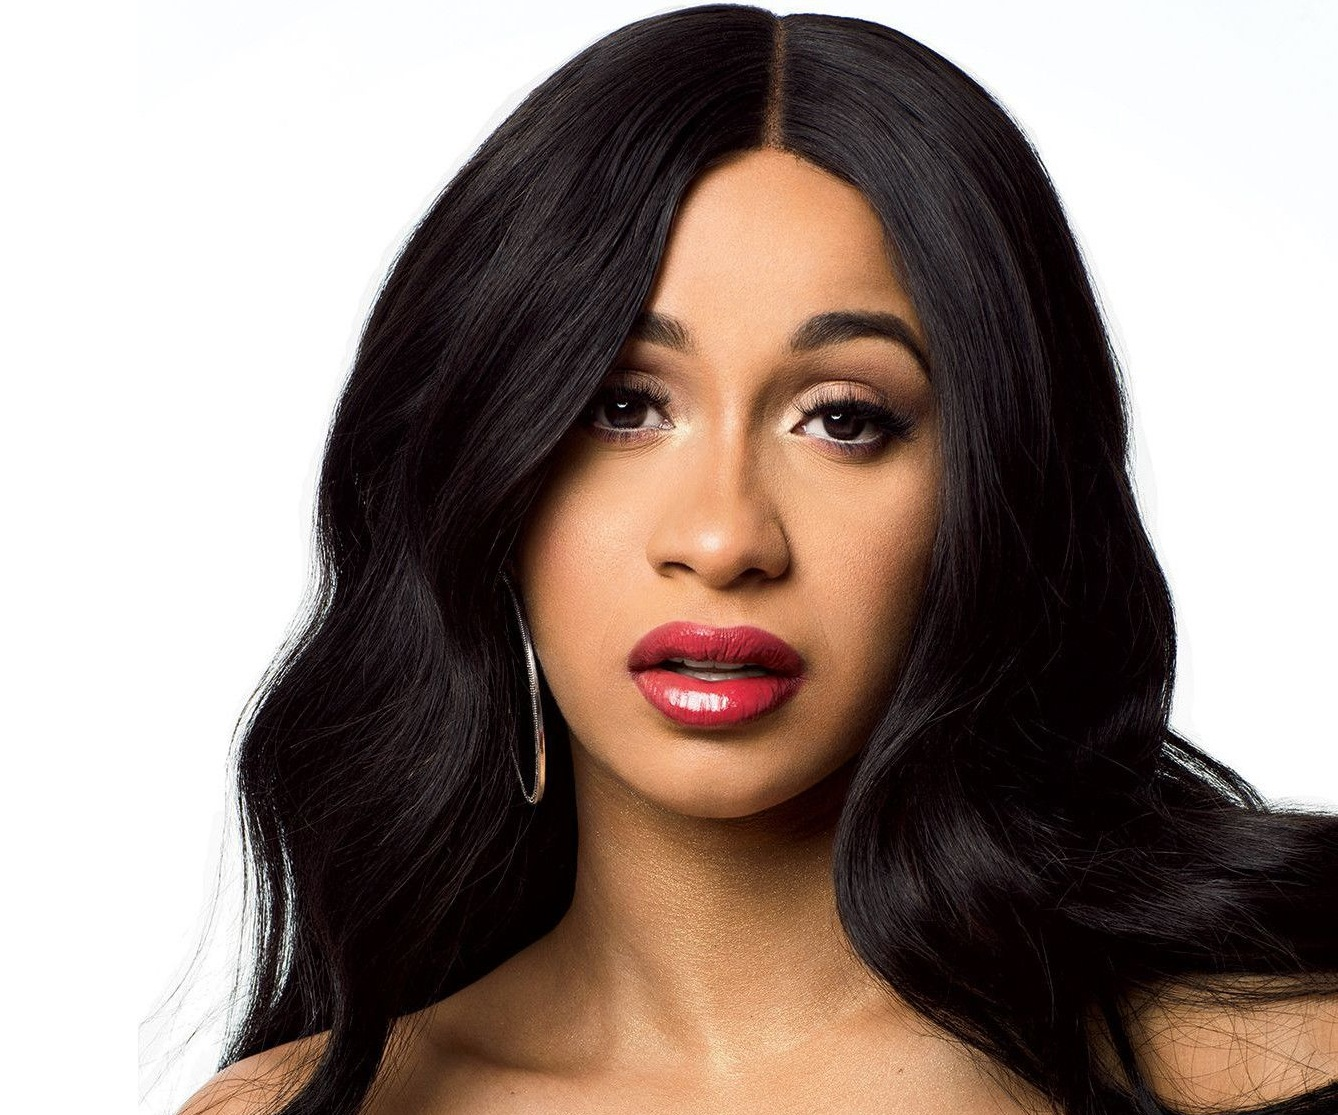 Cardi B's 8 Tattoos & Their Meanings